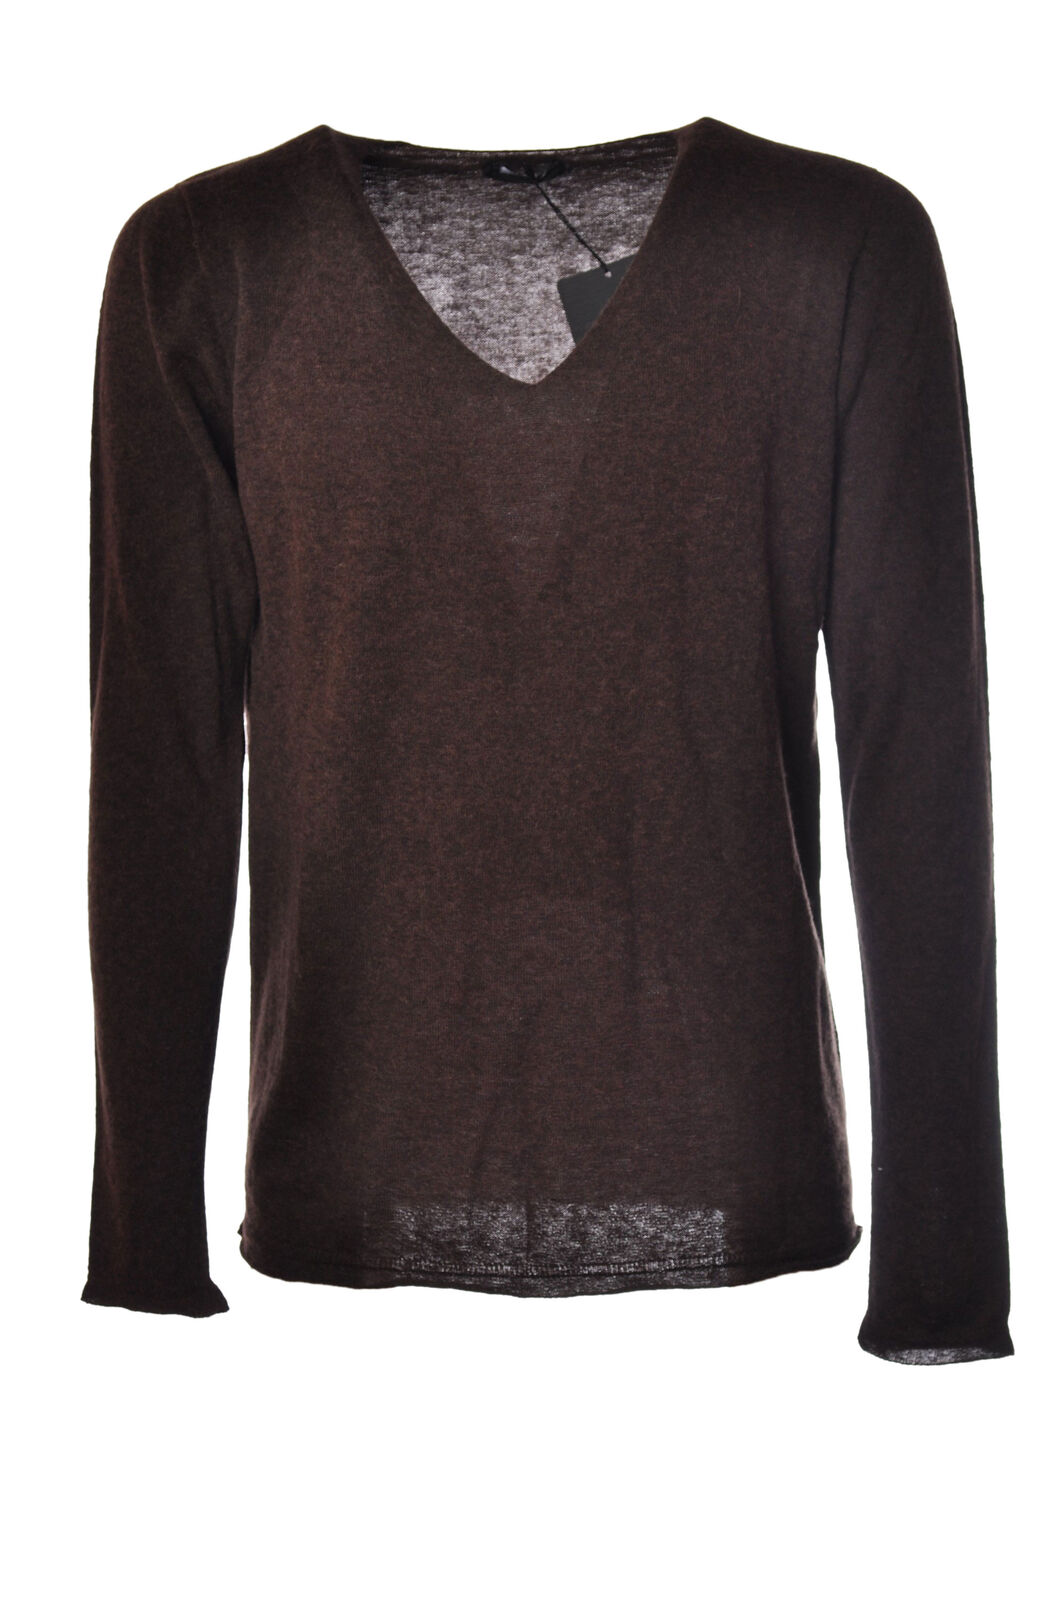 Roberto Collina  -   - Sweaters - Male - marrone - 2426526N173924 0d3776